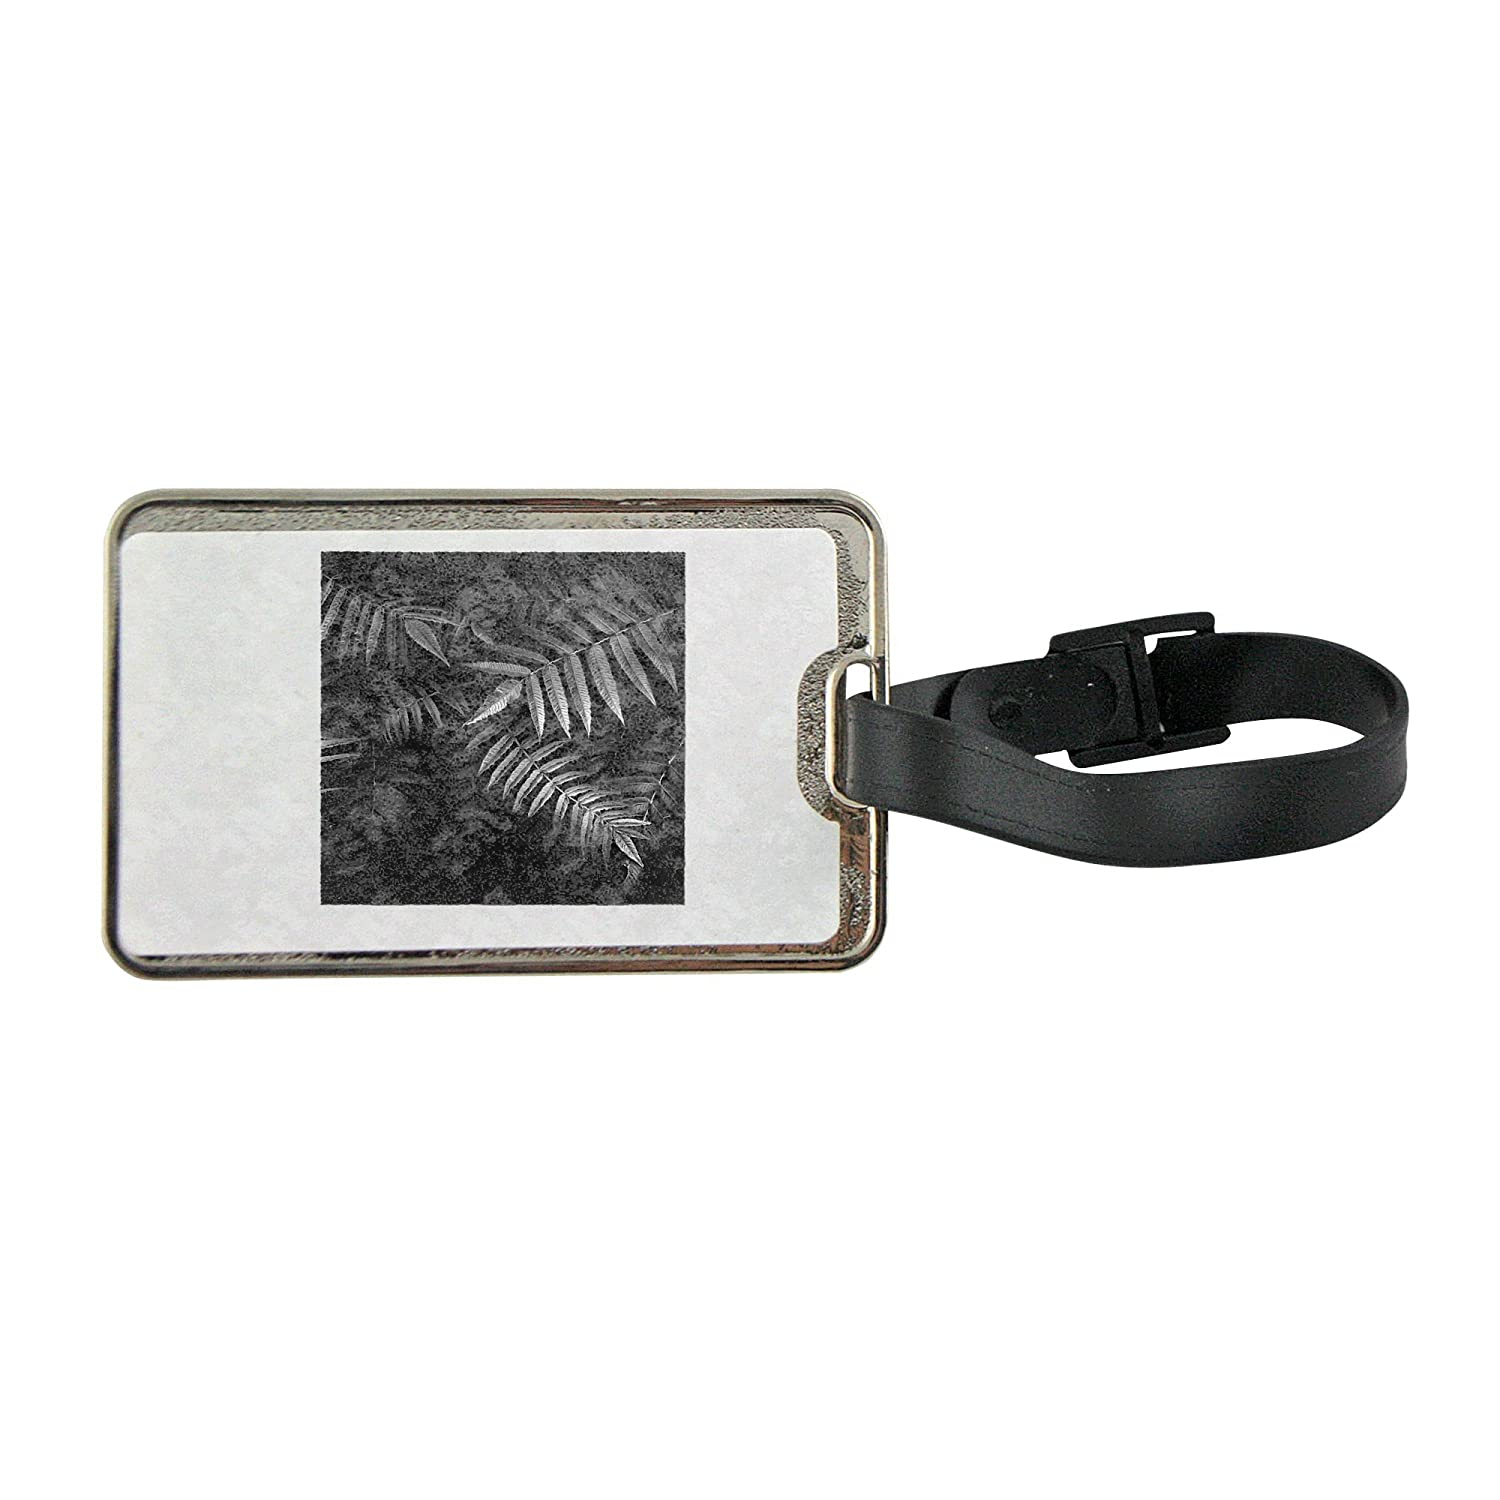 e583bc28a48b Metal luggage tag with Branches with cuspidate leaves 50%OFF ...